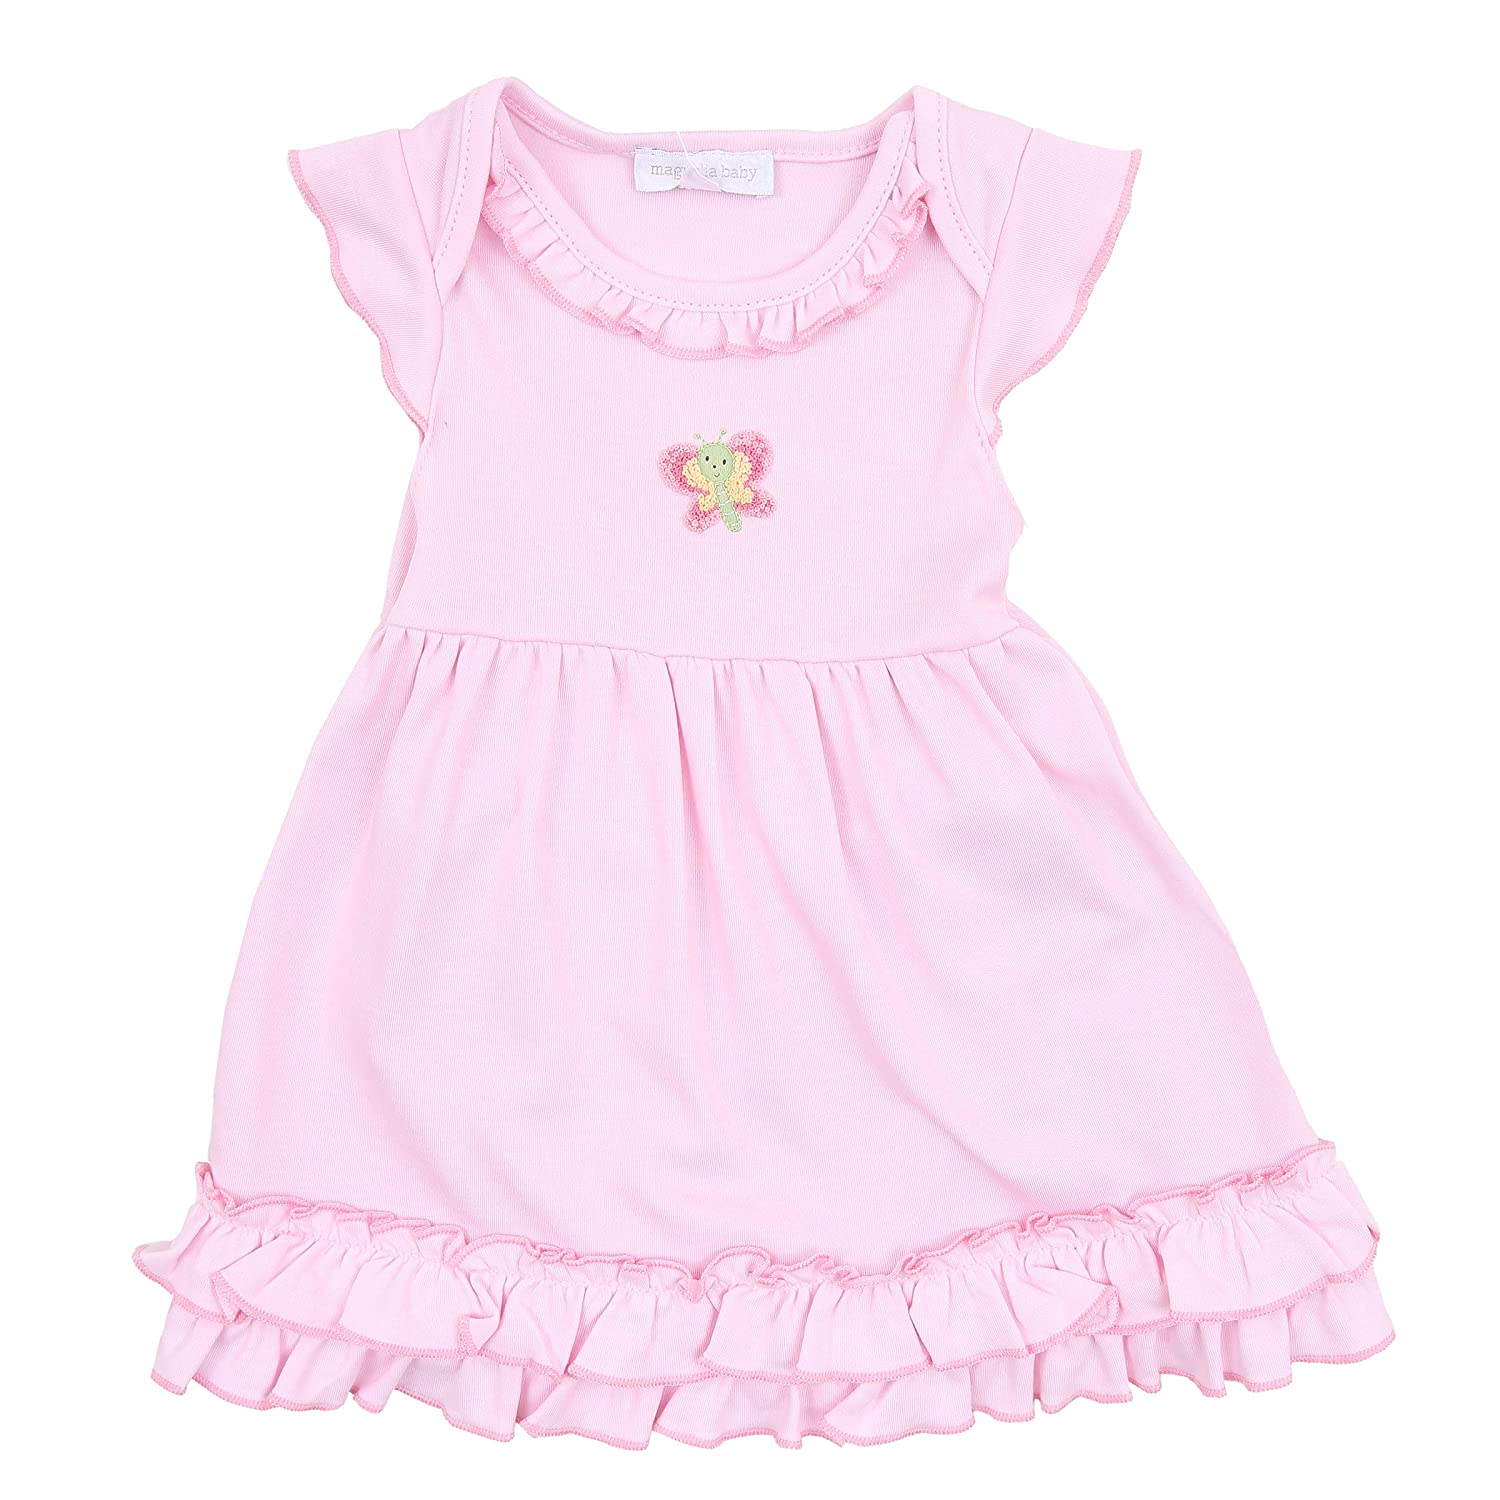 Magnolia Baby Baby Girl Tiny Butterfly Emb Dress Set Pink